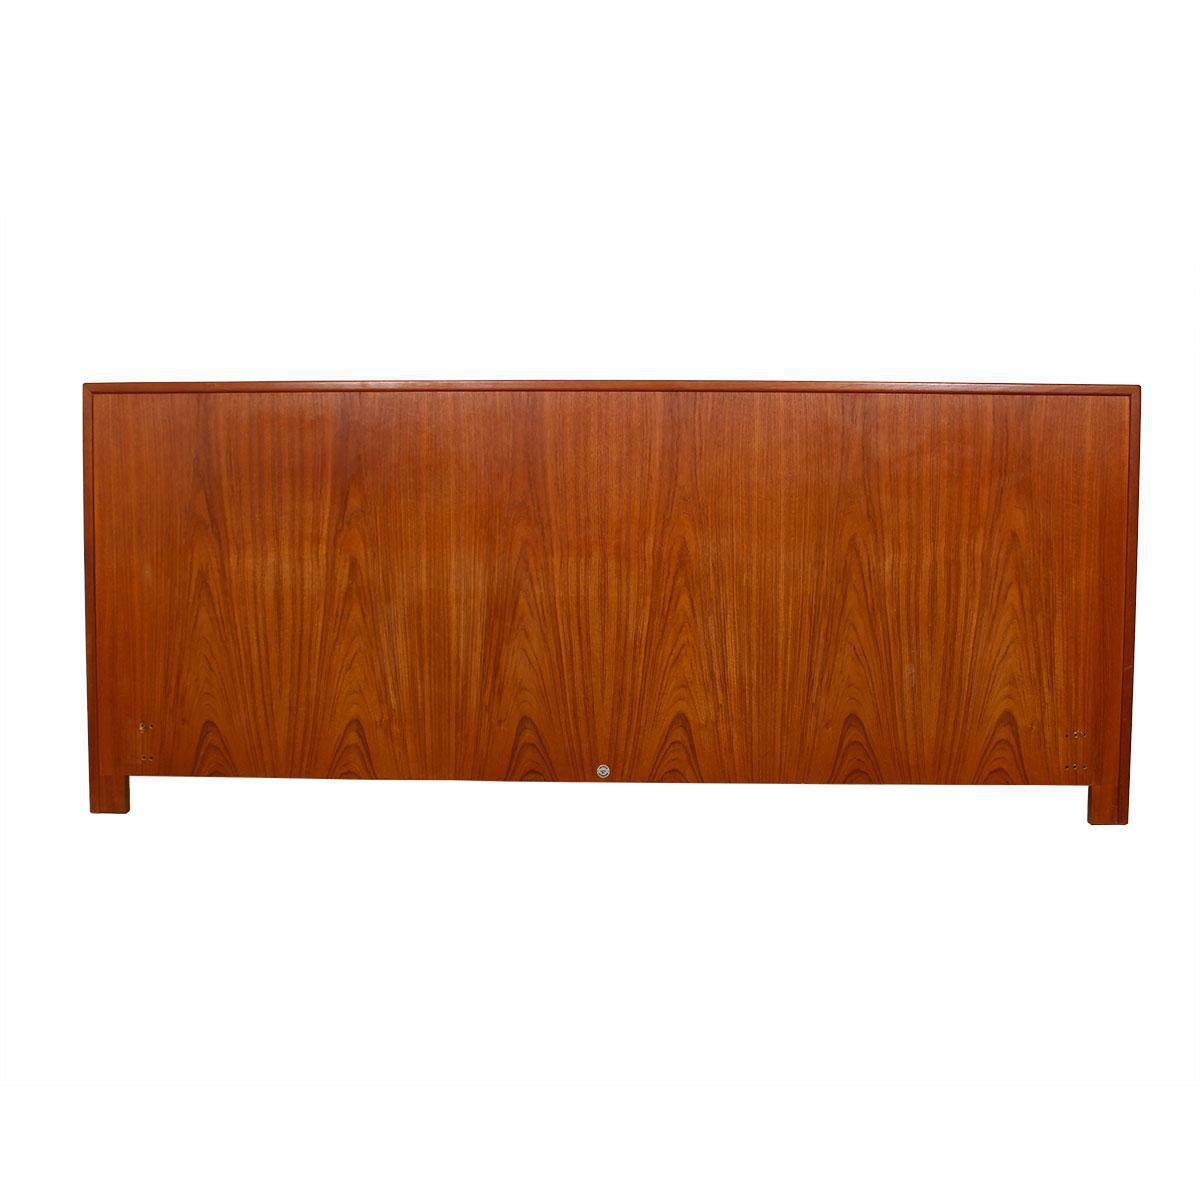 Danish Modern King-sized Headboard in Teak by Falster